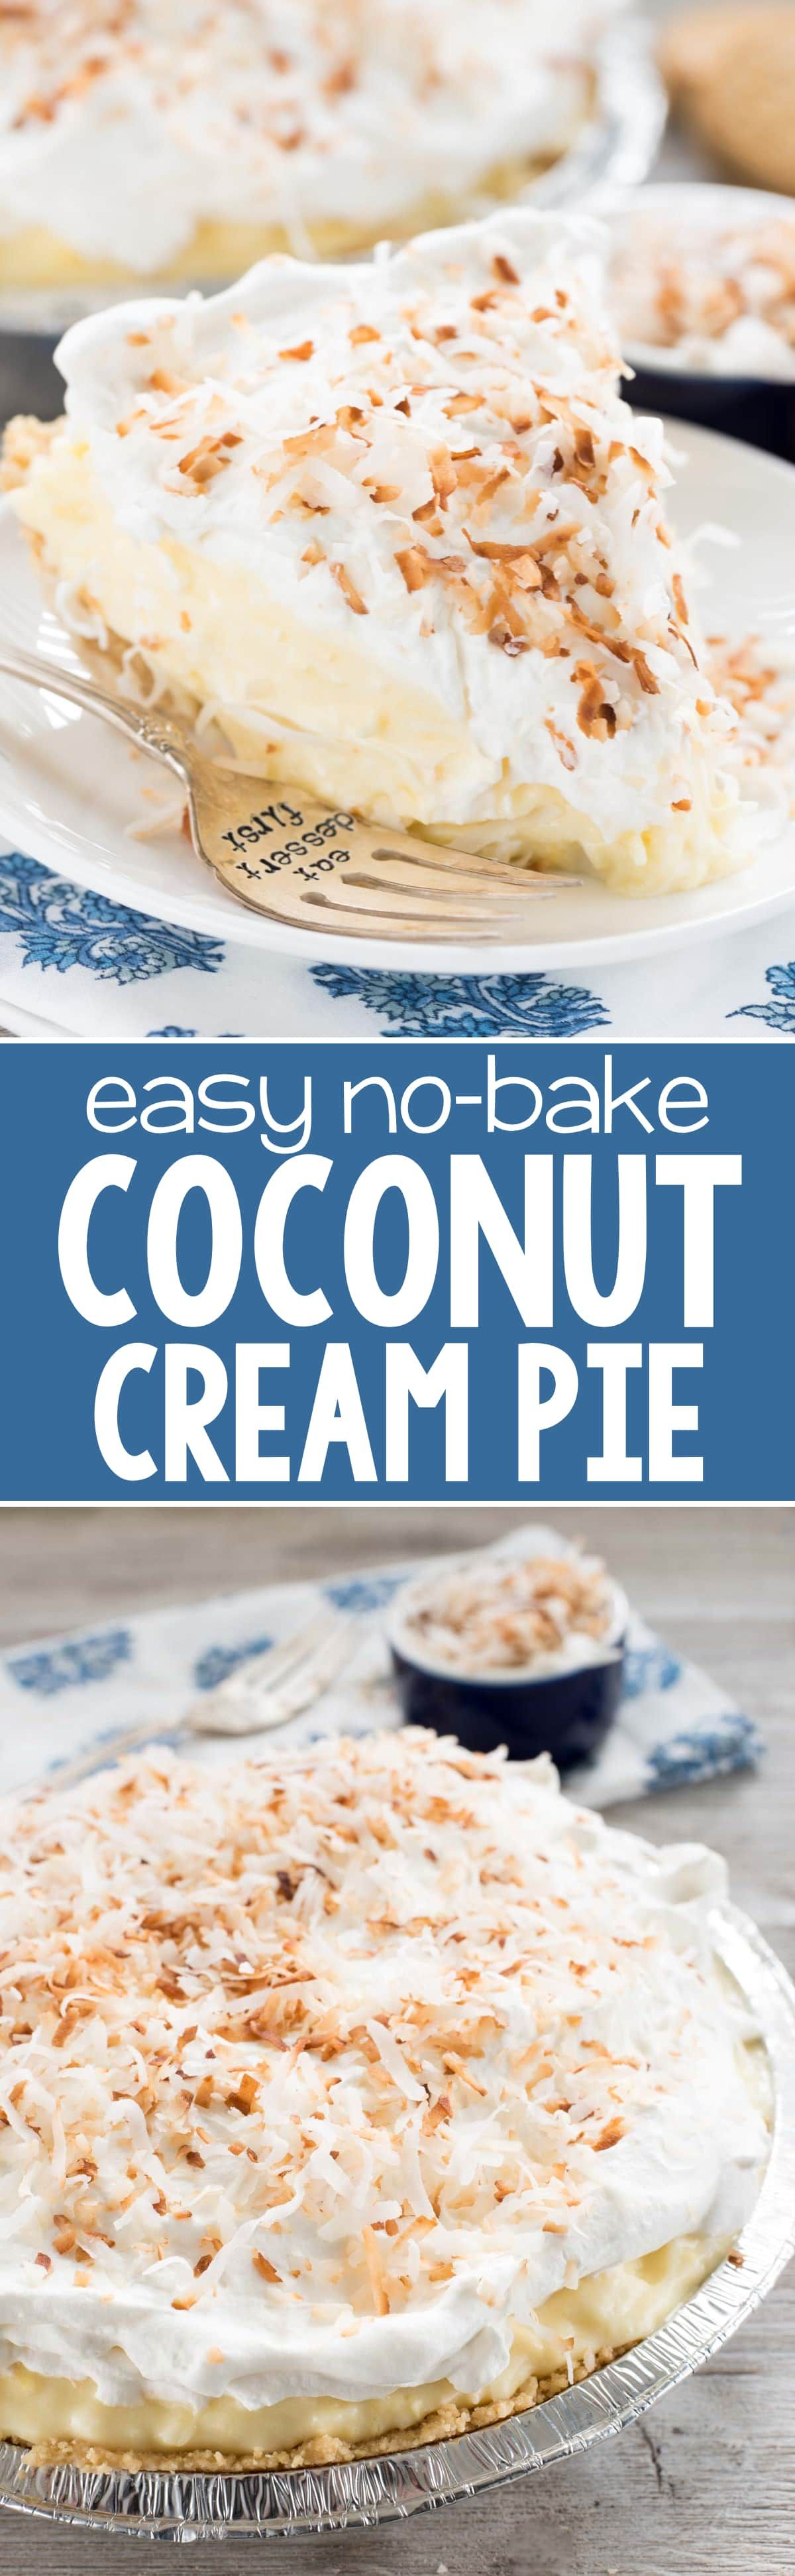 Easy No Bake Coconut Cream Pie  Crazy For Crust is part of Baking recipes pie -